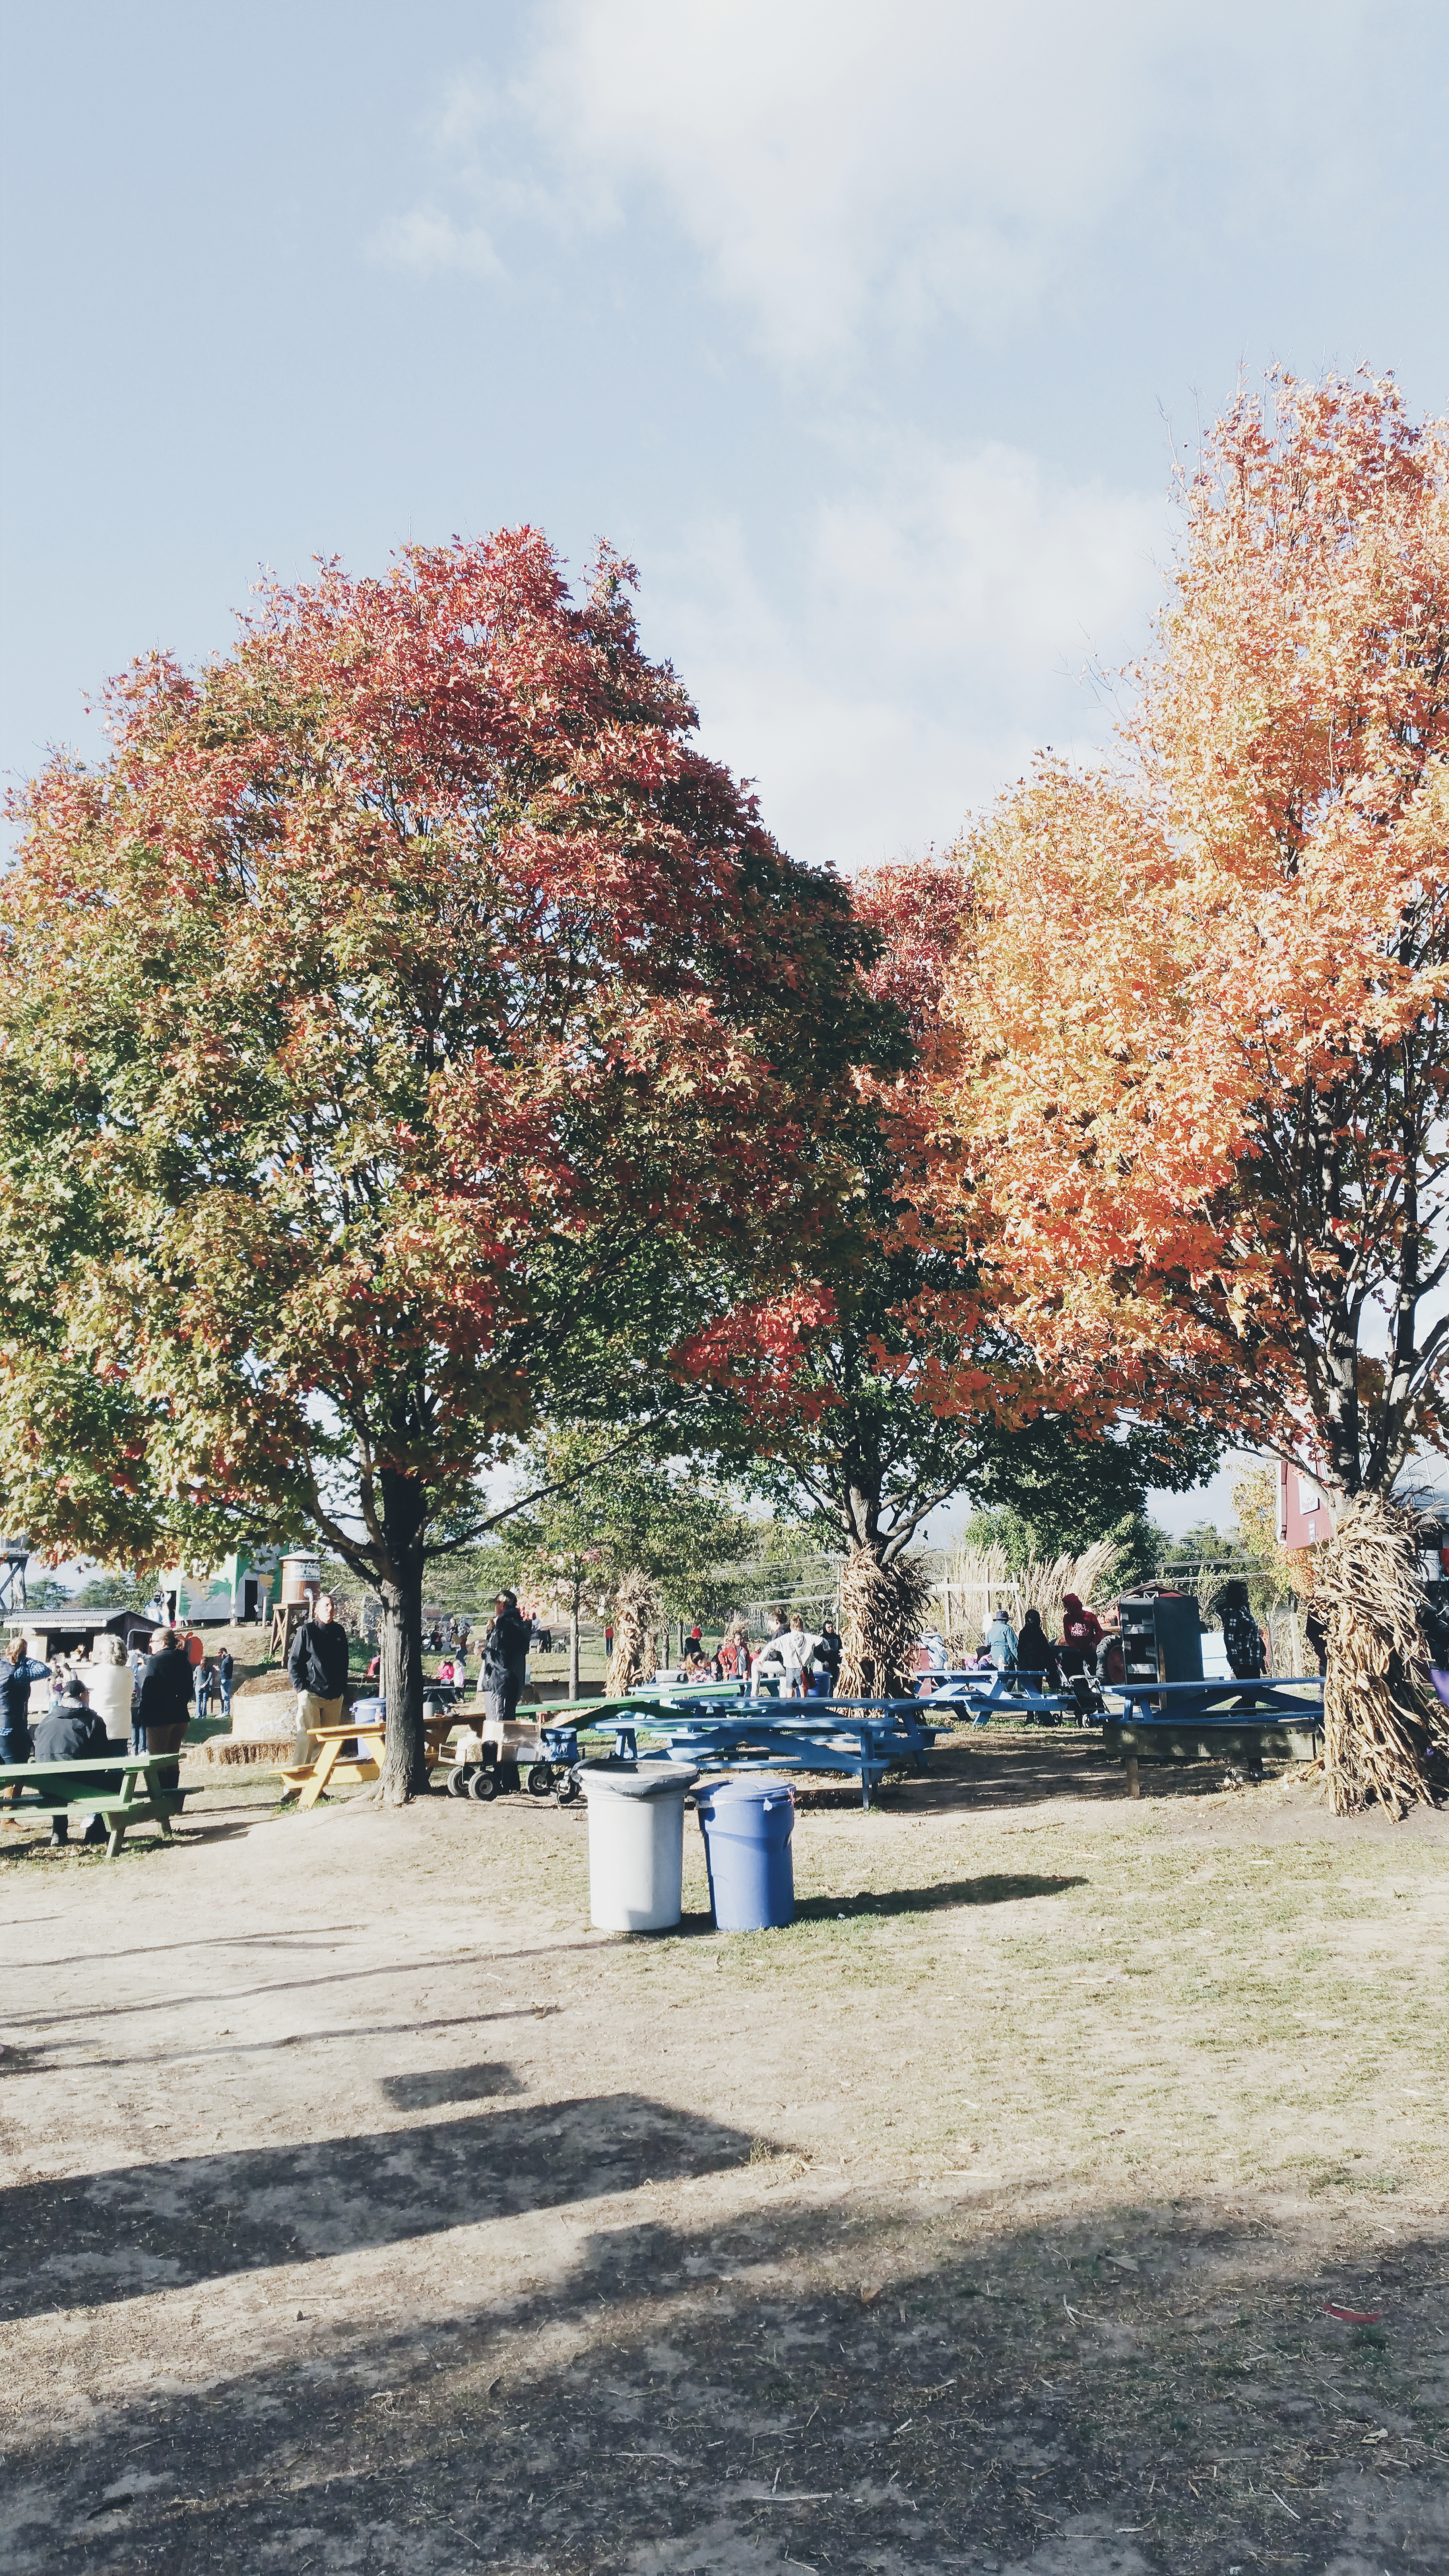 Fall Travel: Our Trip to Pumpkin Patch at Cox Farms